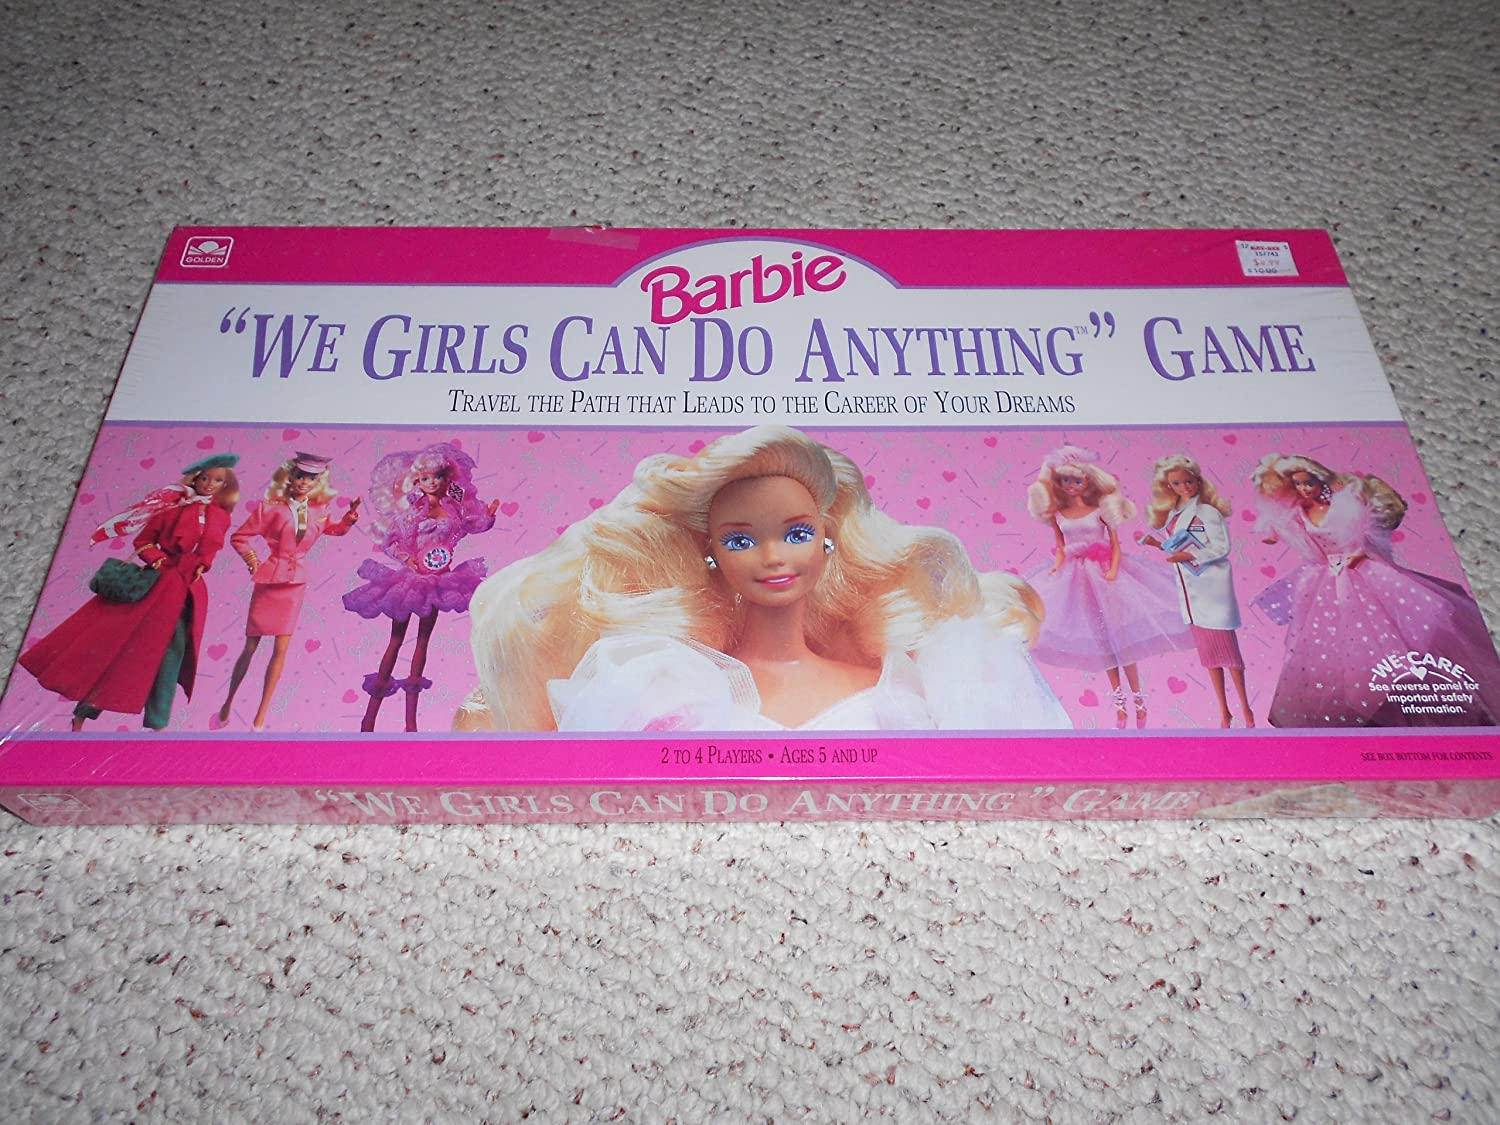 1991 We Girls Can Do Anything Barbie Doll Game